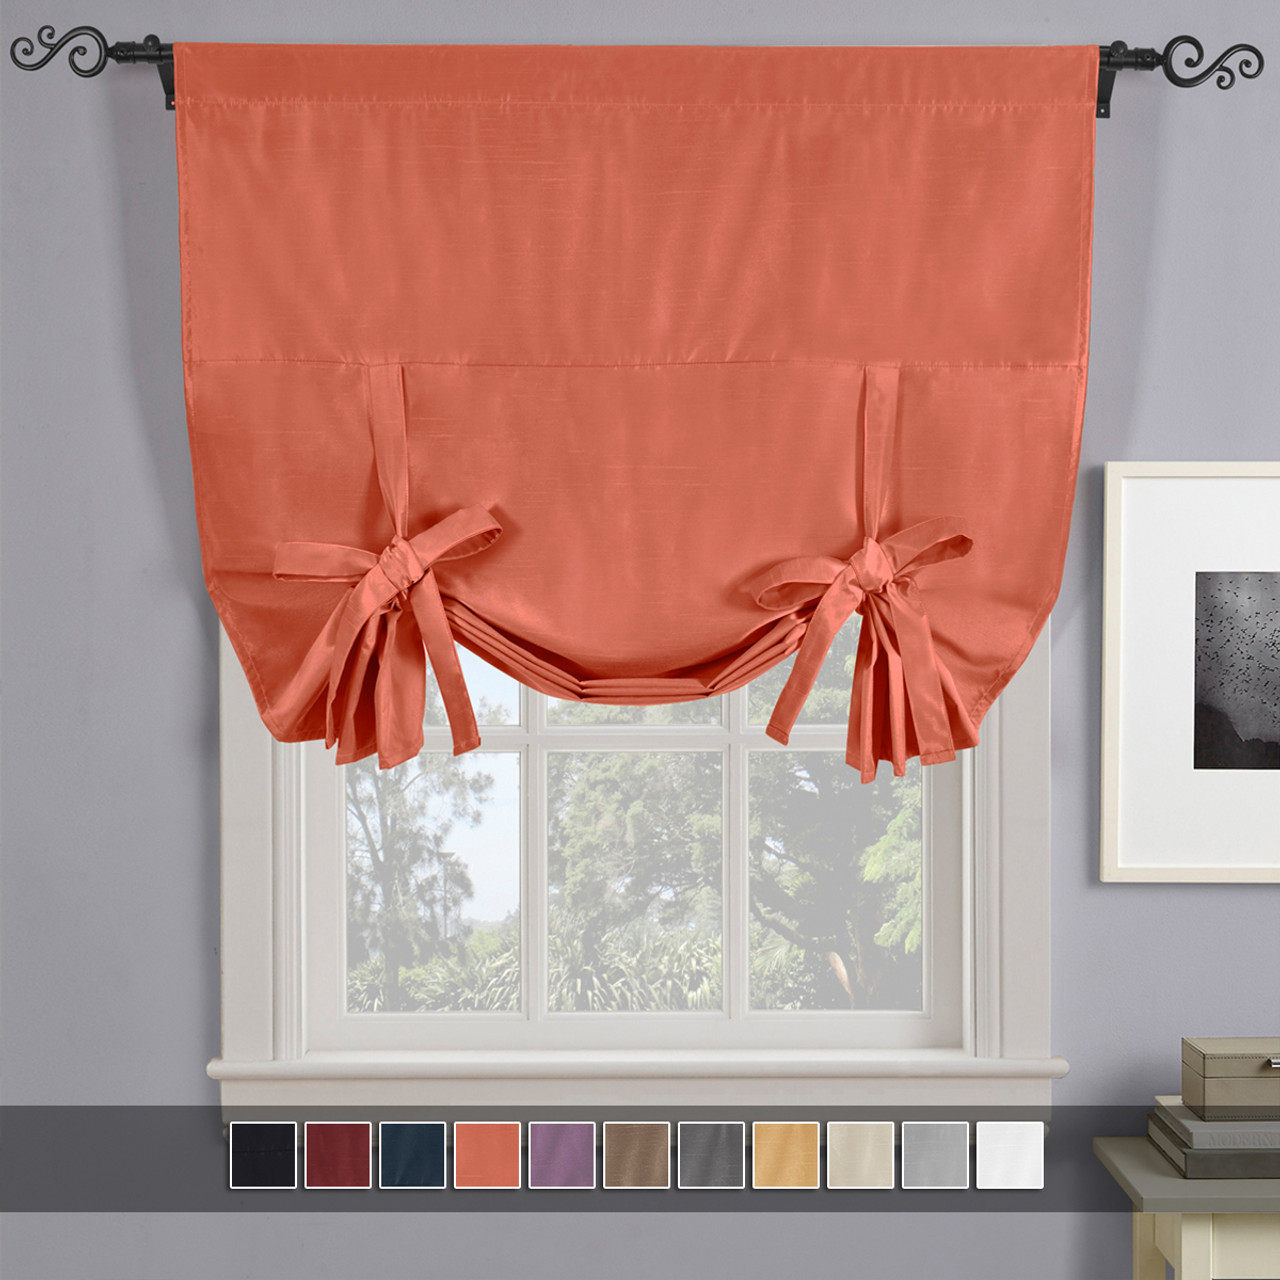 Soho Triple Pass Blackout Tie Up Curtain 42 W X 63 L,Light Chocolate Brown Hair Color With Caramel Highlights